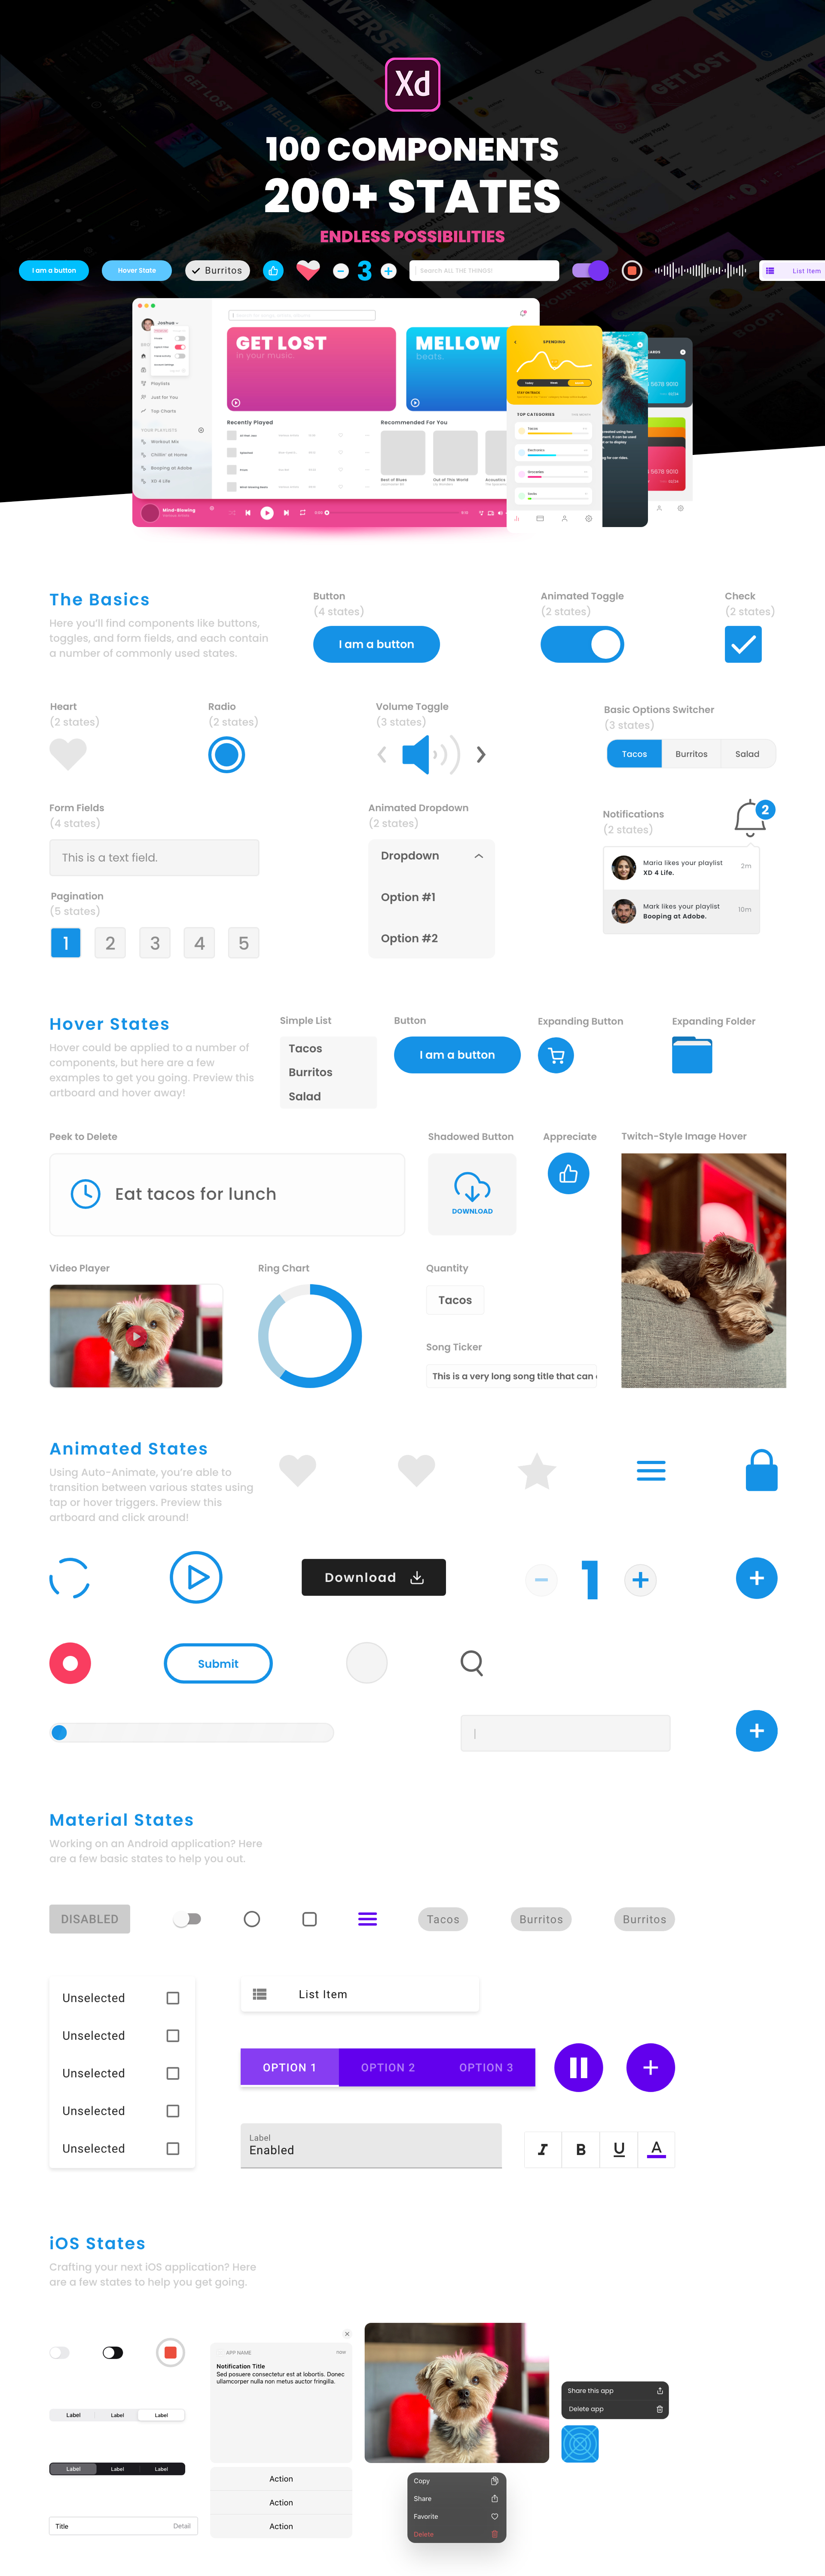 Component States UI Kit for Adobe XD - States have hit Adobe XD and to help sprinkle some inspiration on your projects, I'm releasing this UI kit with buttons, icons, toggles, animations, and more. I've also included a few real-world examples so you can view states in action.